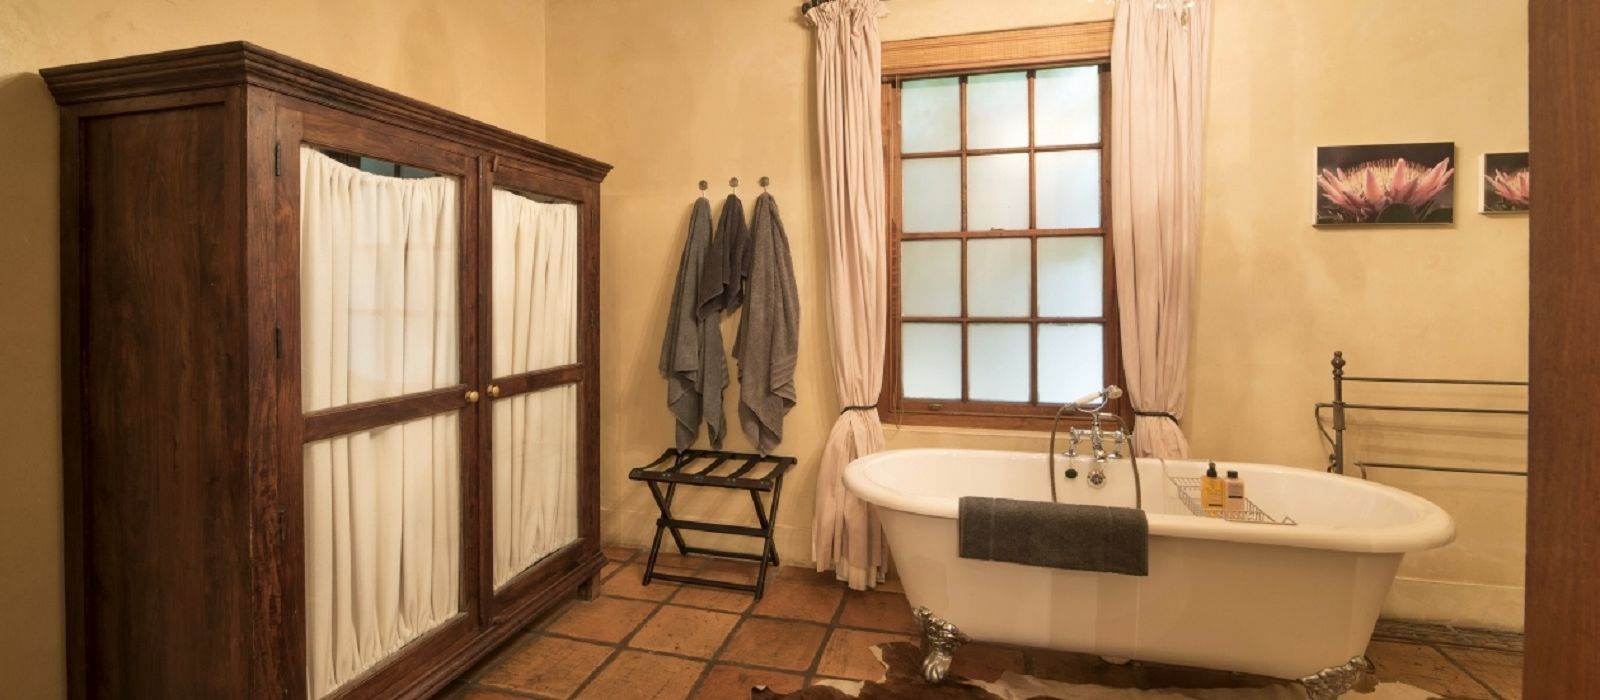 Hotel Avondrood Guest House South Africa